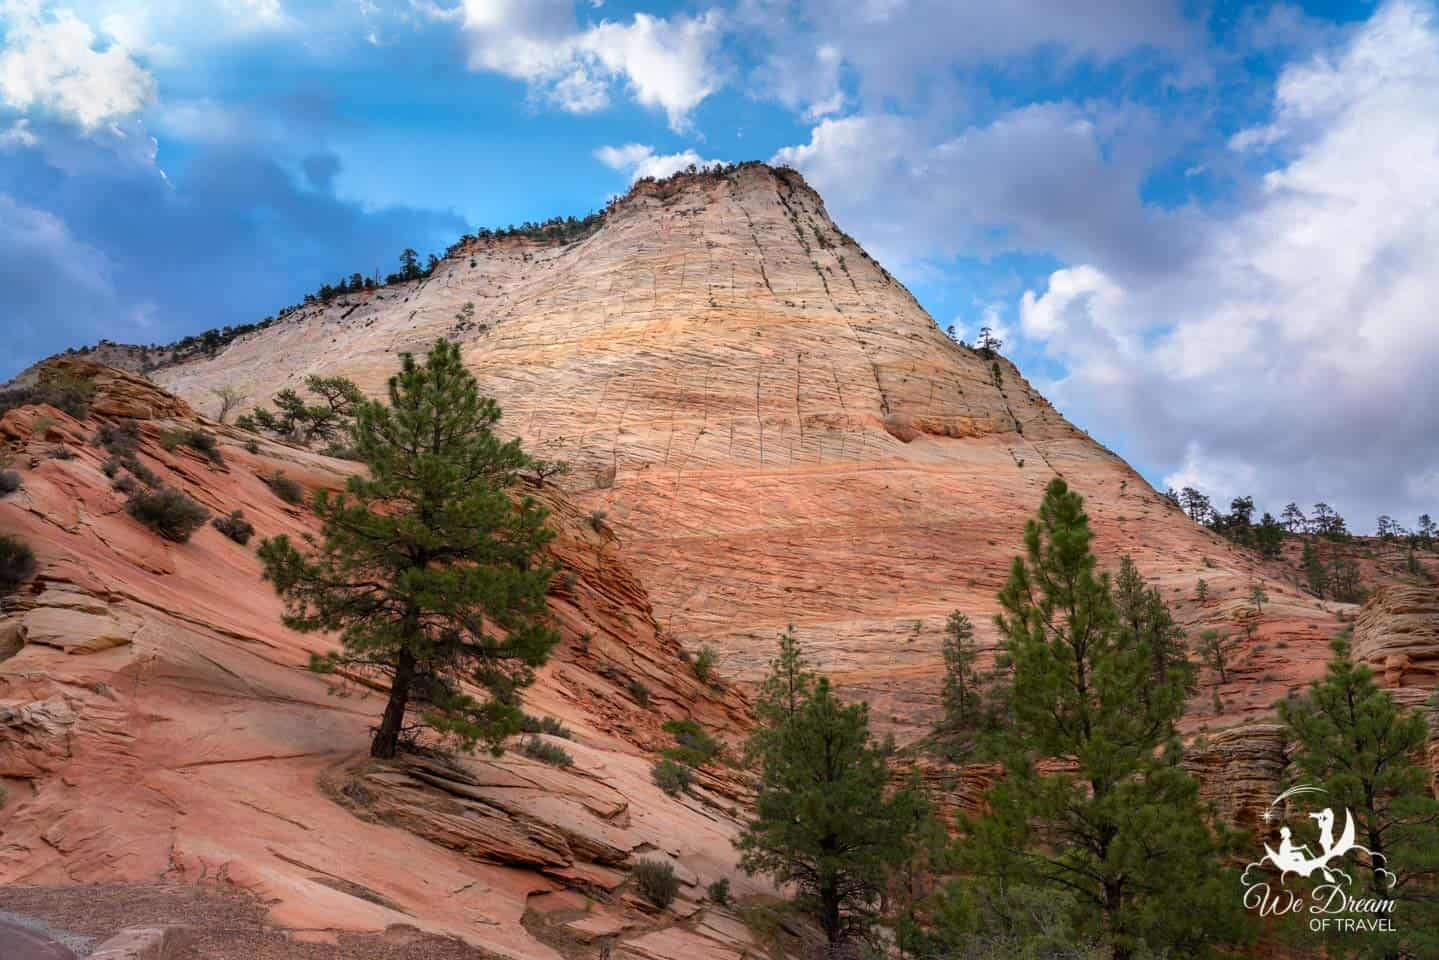 The iconic Checkerboard Mesa is the first natural feature you will discover as you enter Zion National Park from the East Entrance.